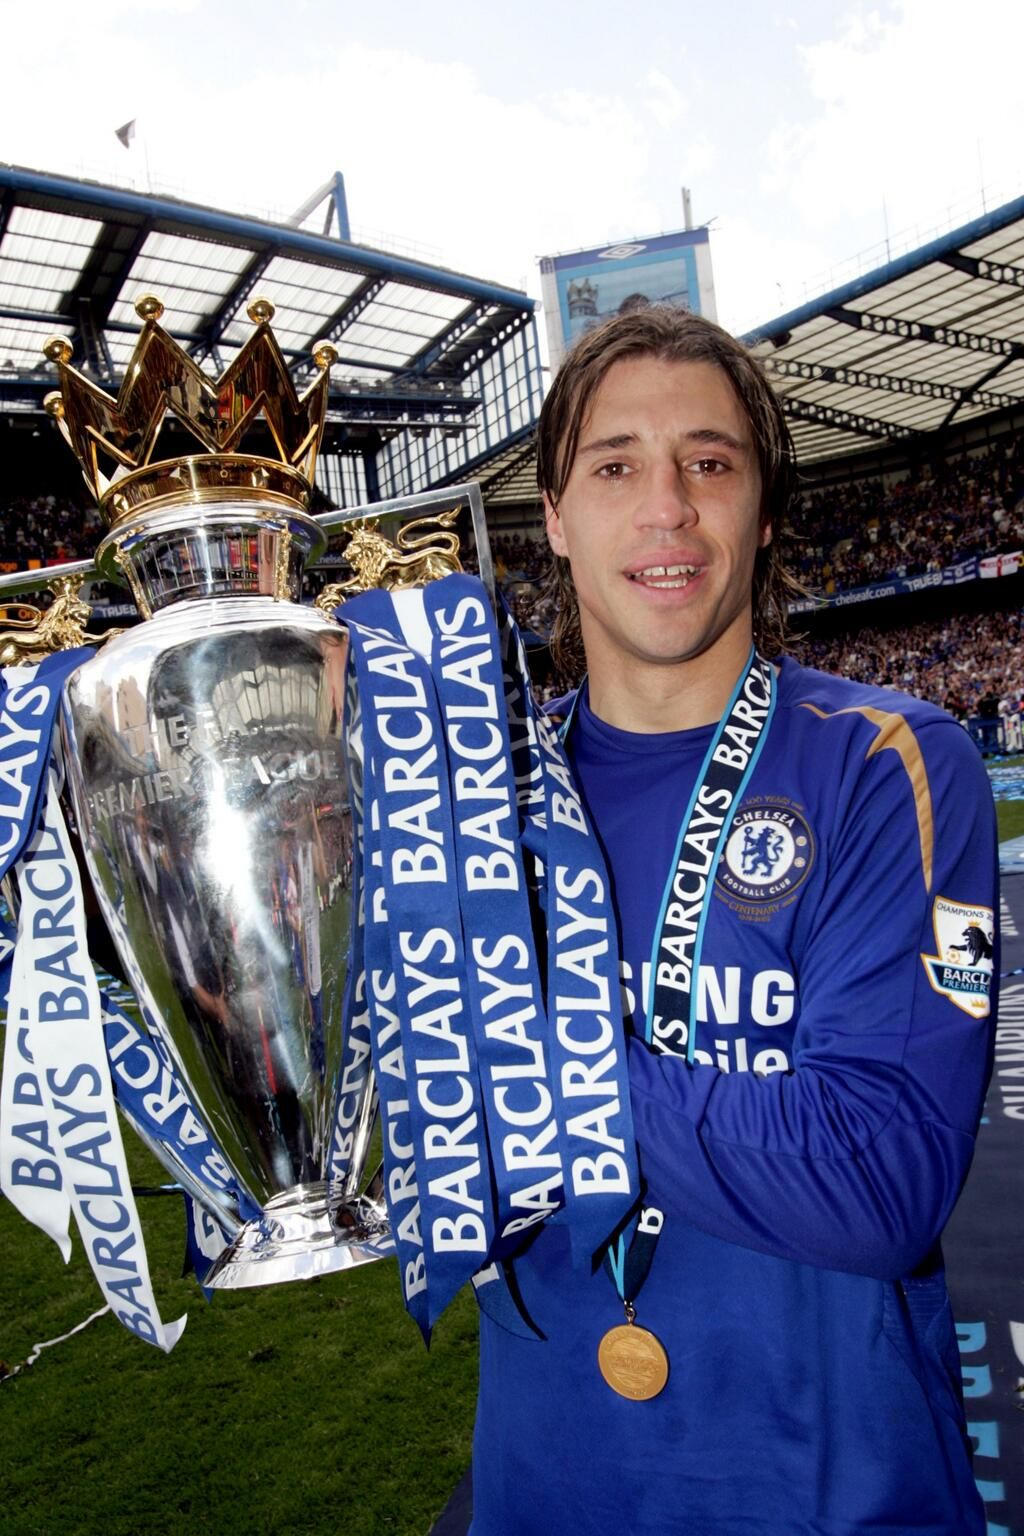 Happy birthday also to former Blue Hernan Crespo, who turns 39 today! #CFC pic.twitter.com/U8dQ1CBpfT